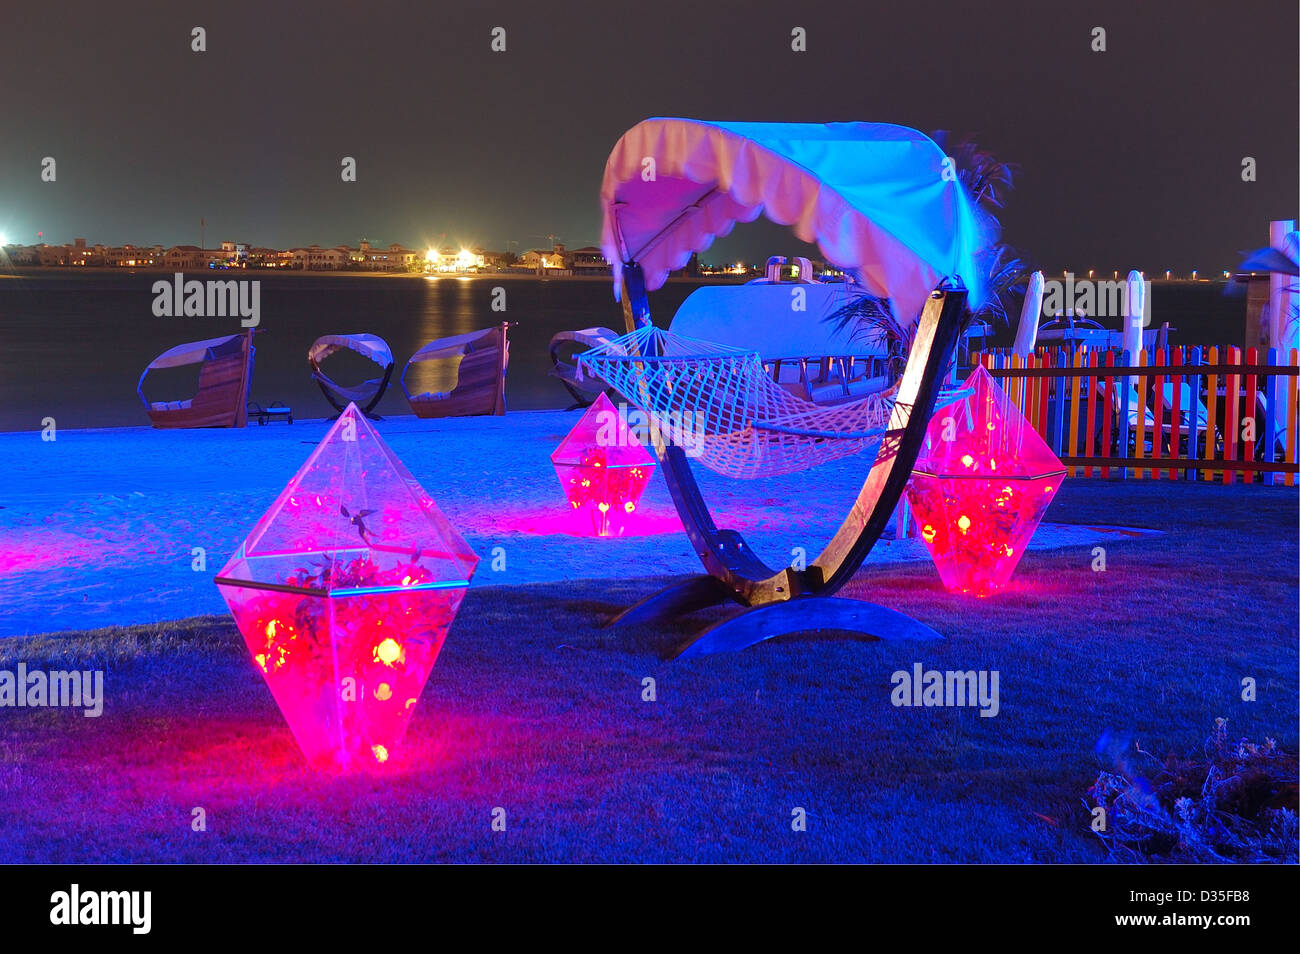 beach decoration at the luxury hotel and night illumination on